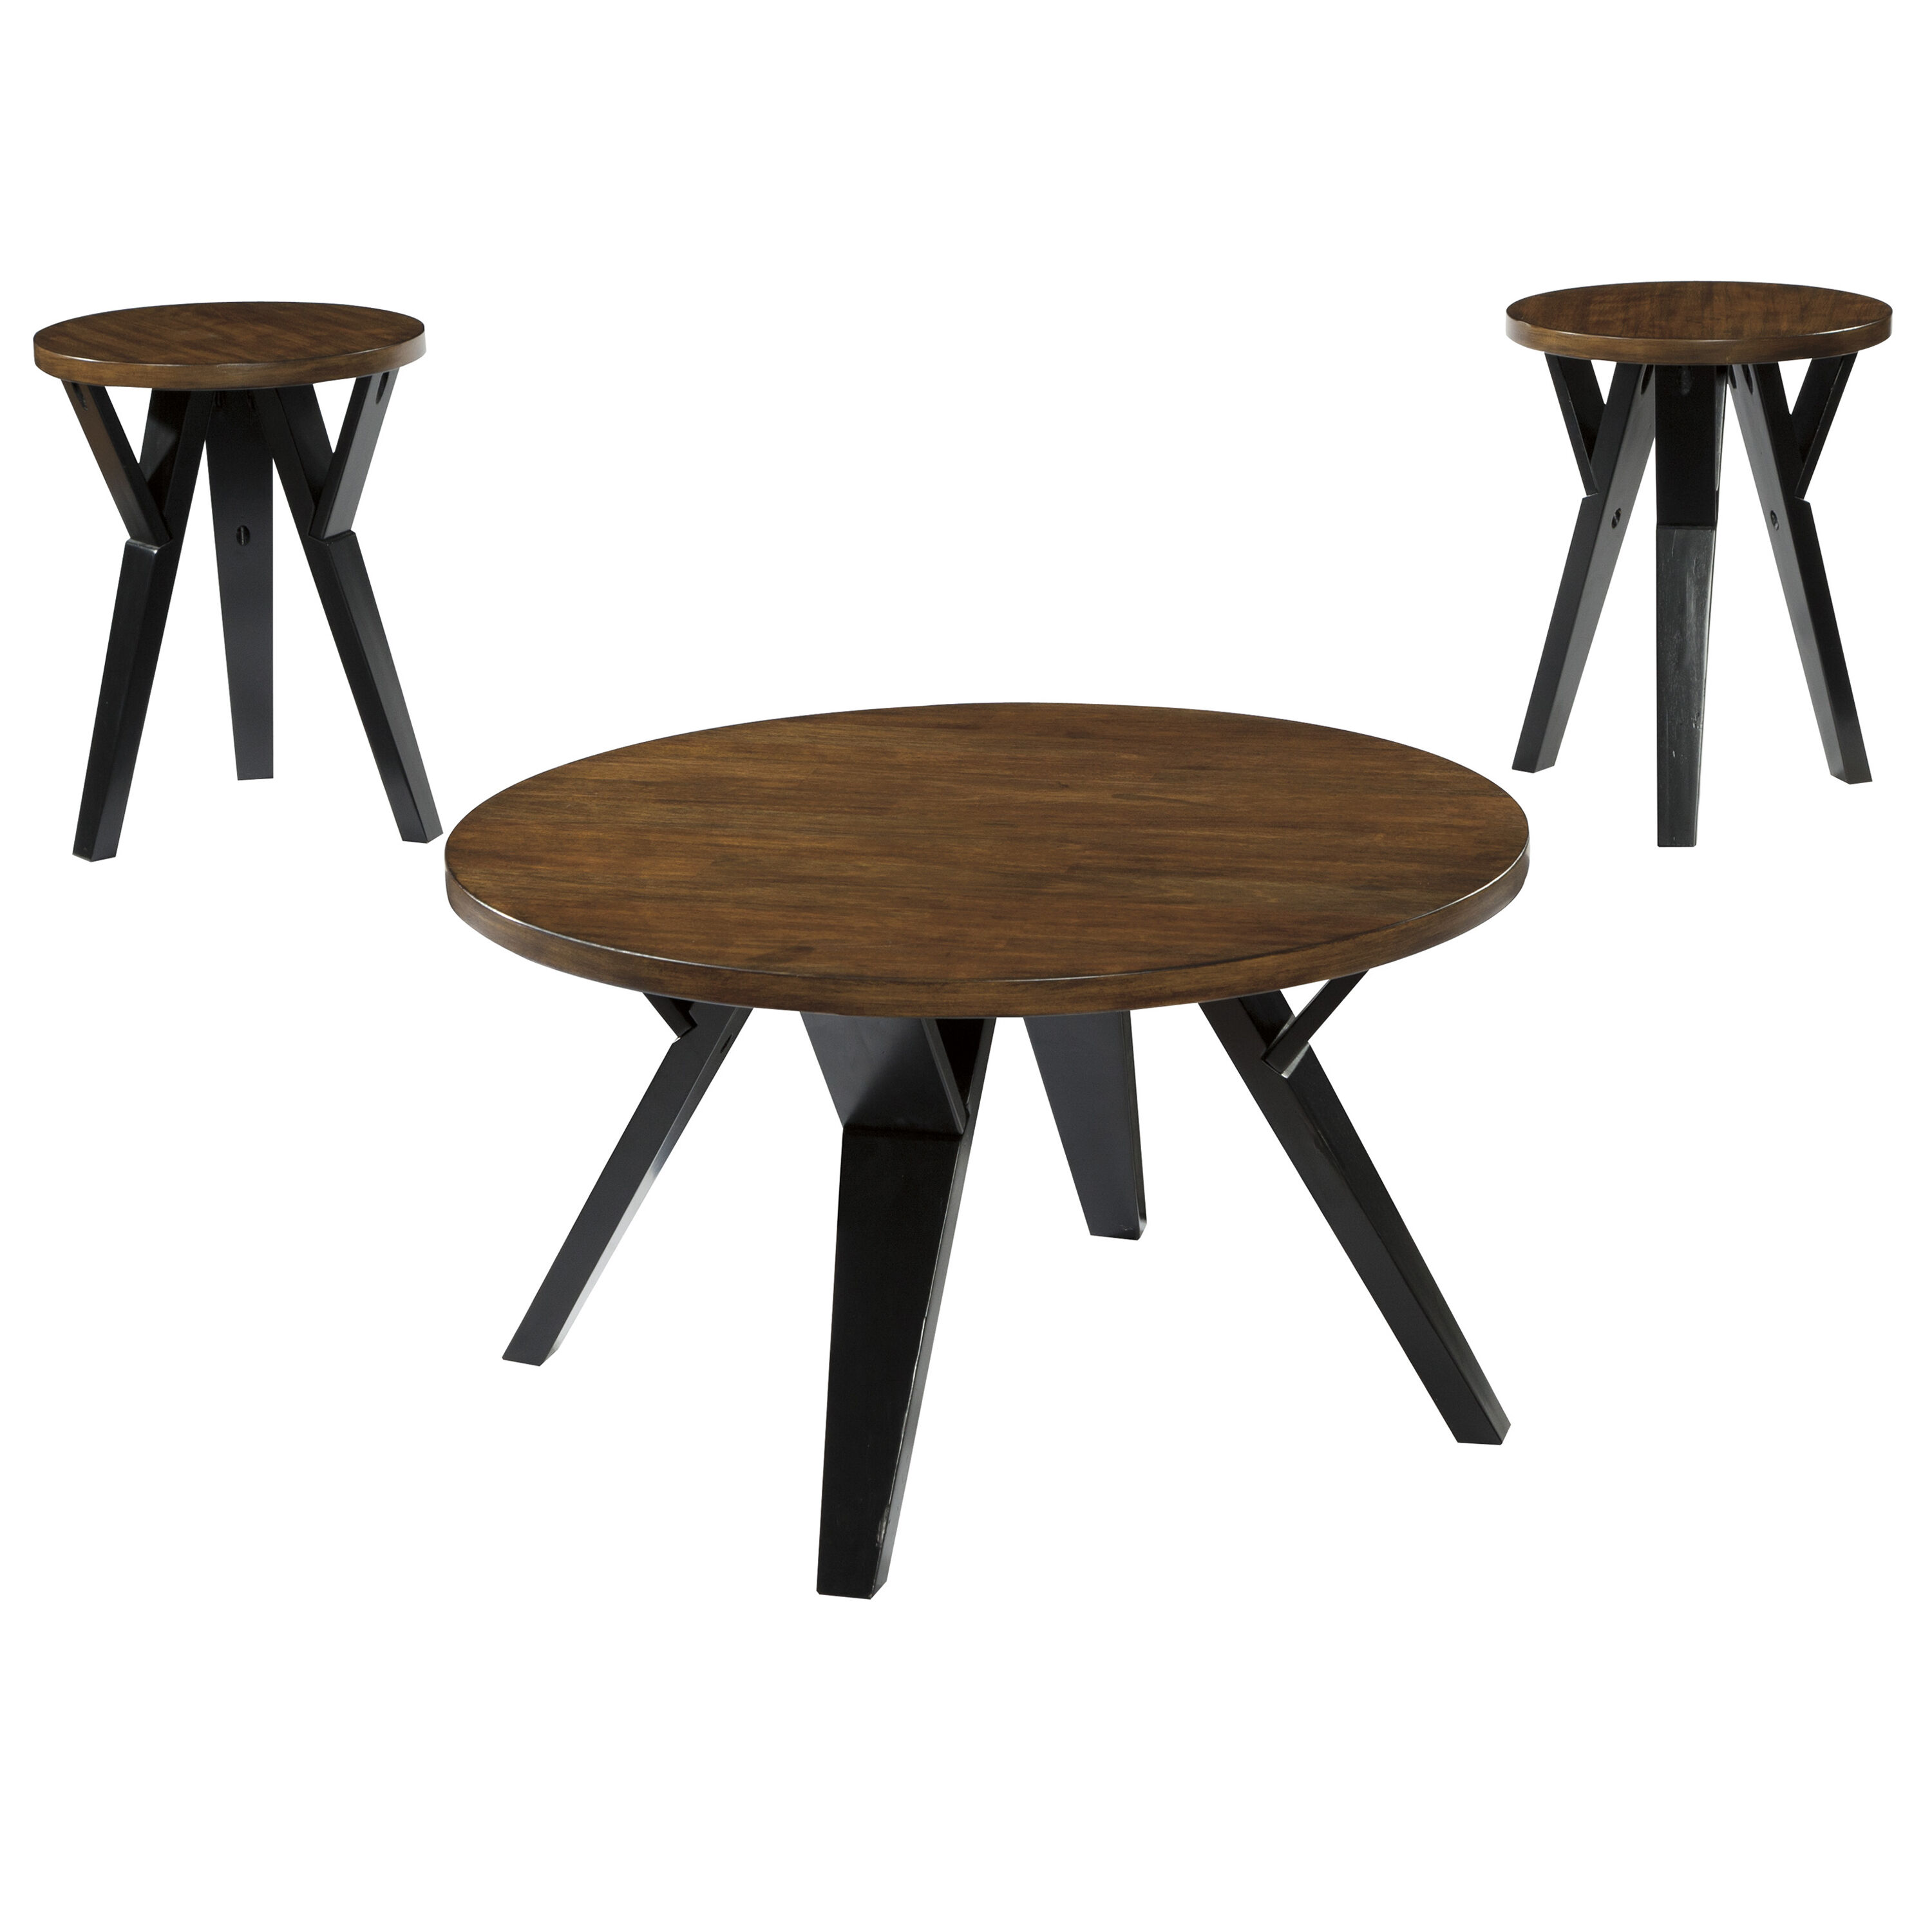 ... Our Signature Design By Ashley Ingel 3 Piece Occasional Table Set Is On  Sale Now.